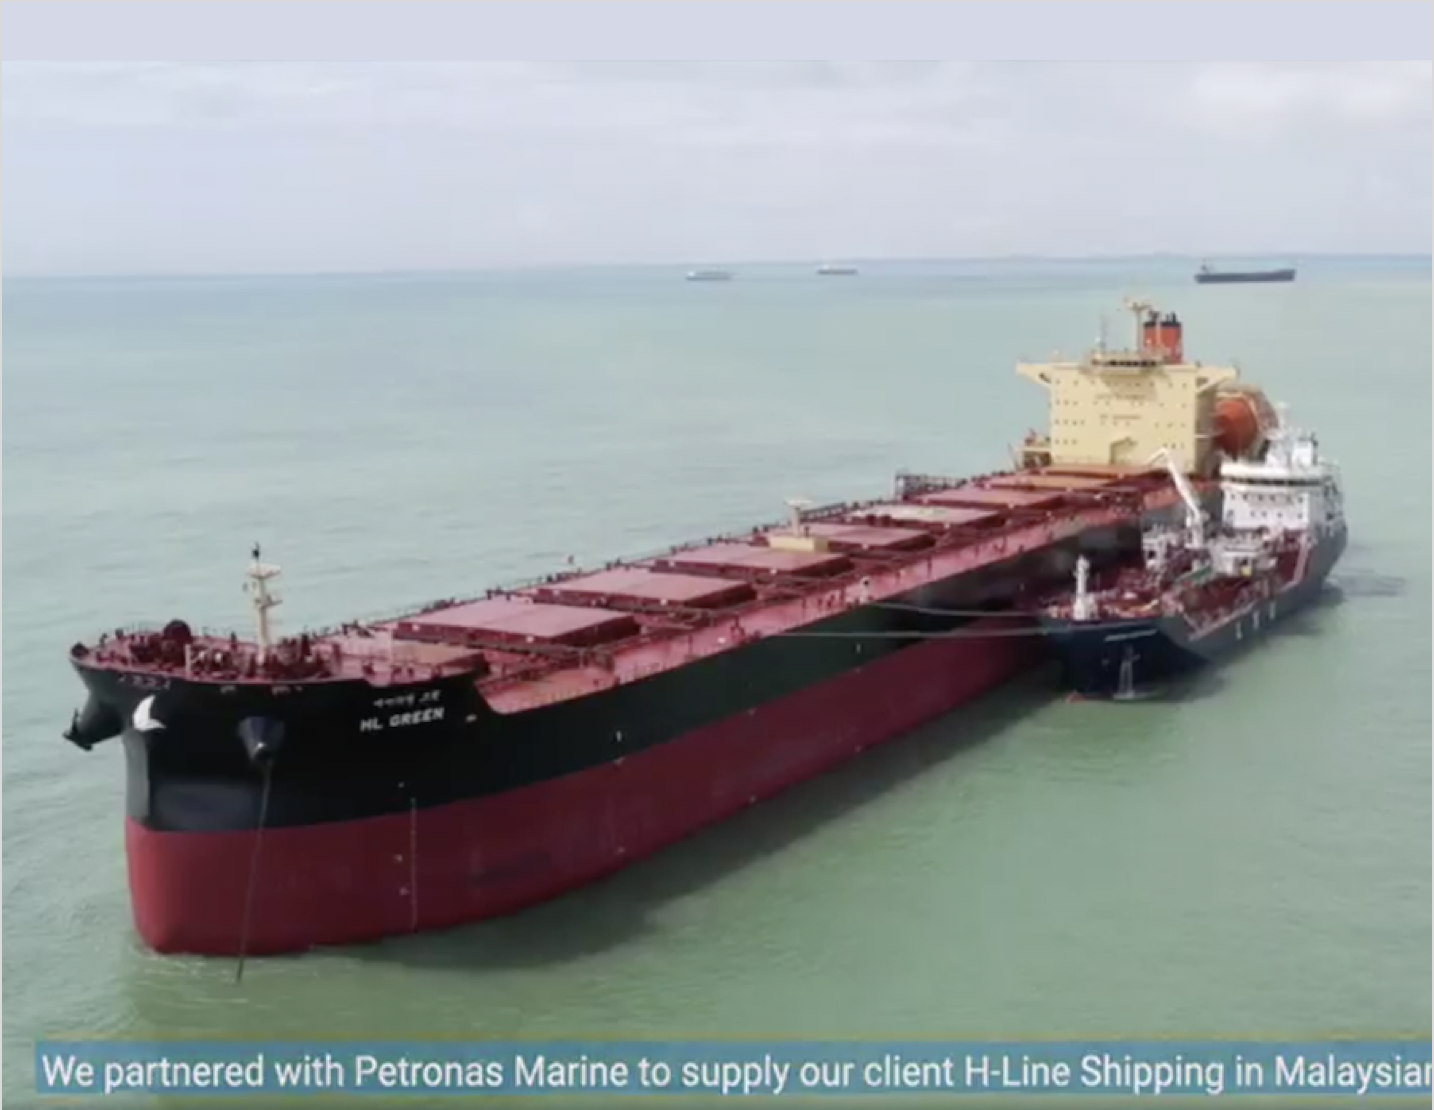 Peninsula claims largest LNG bunker delivery in maiden deal with Petronas and H-Line